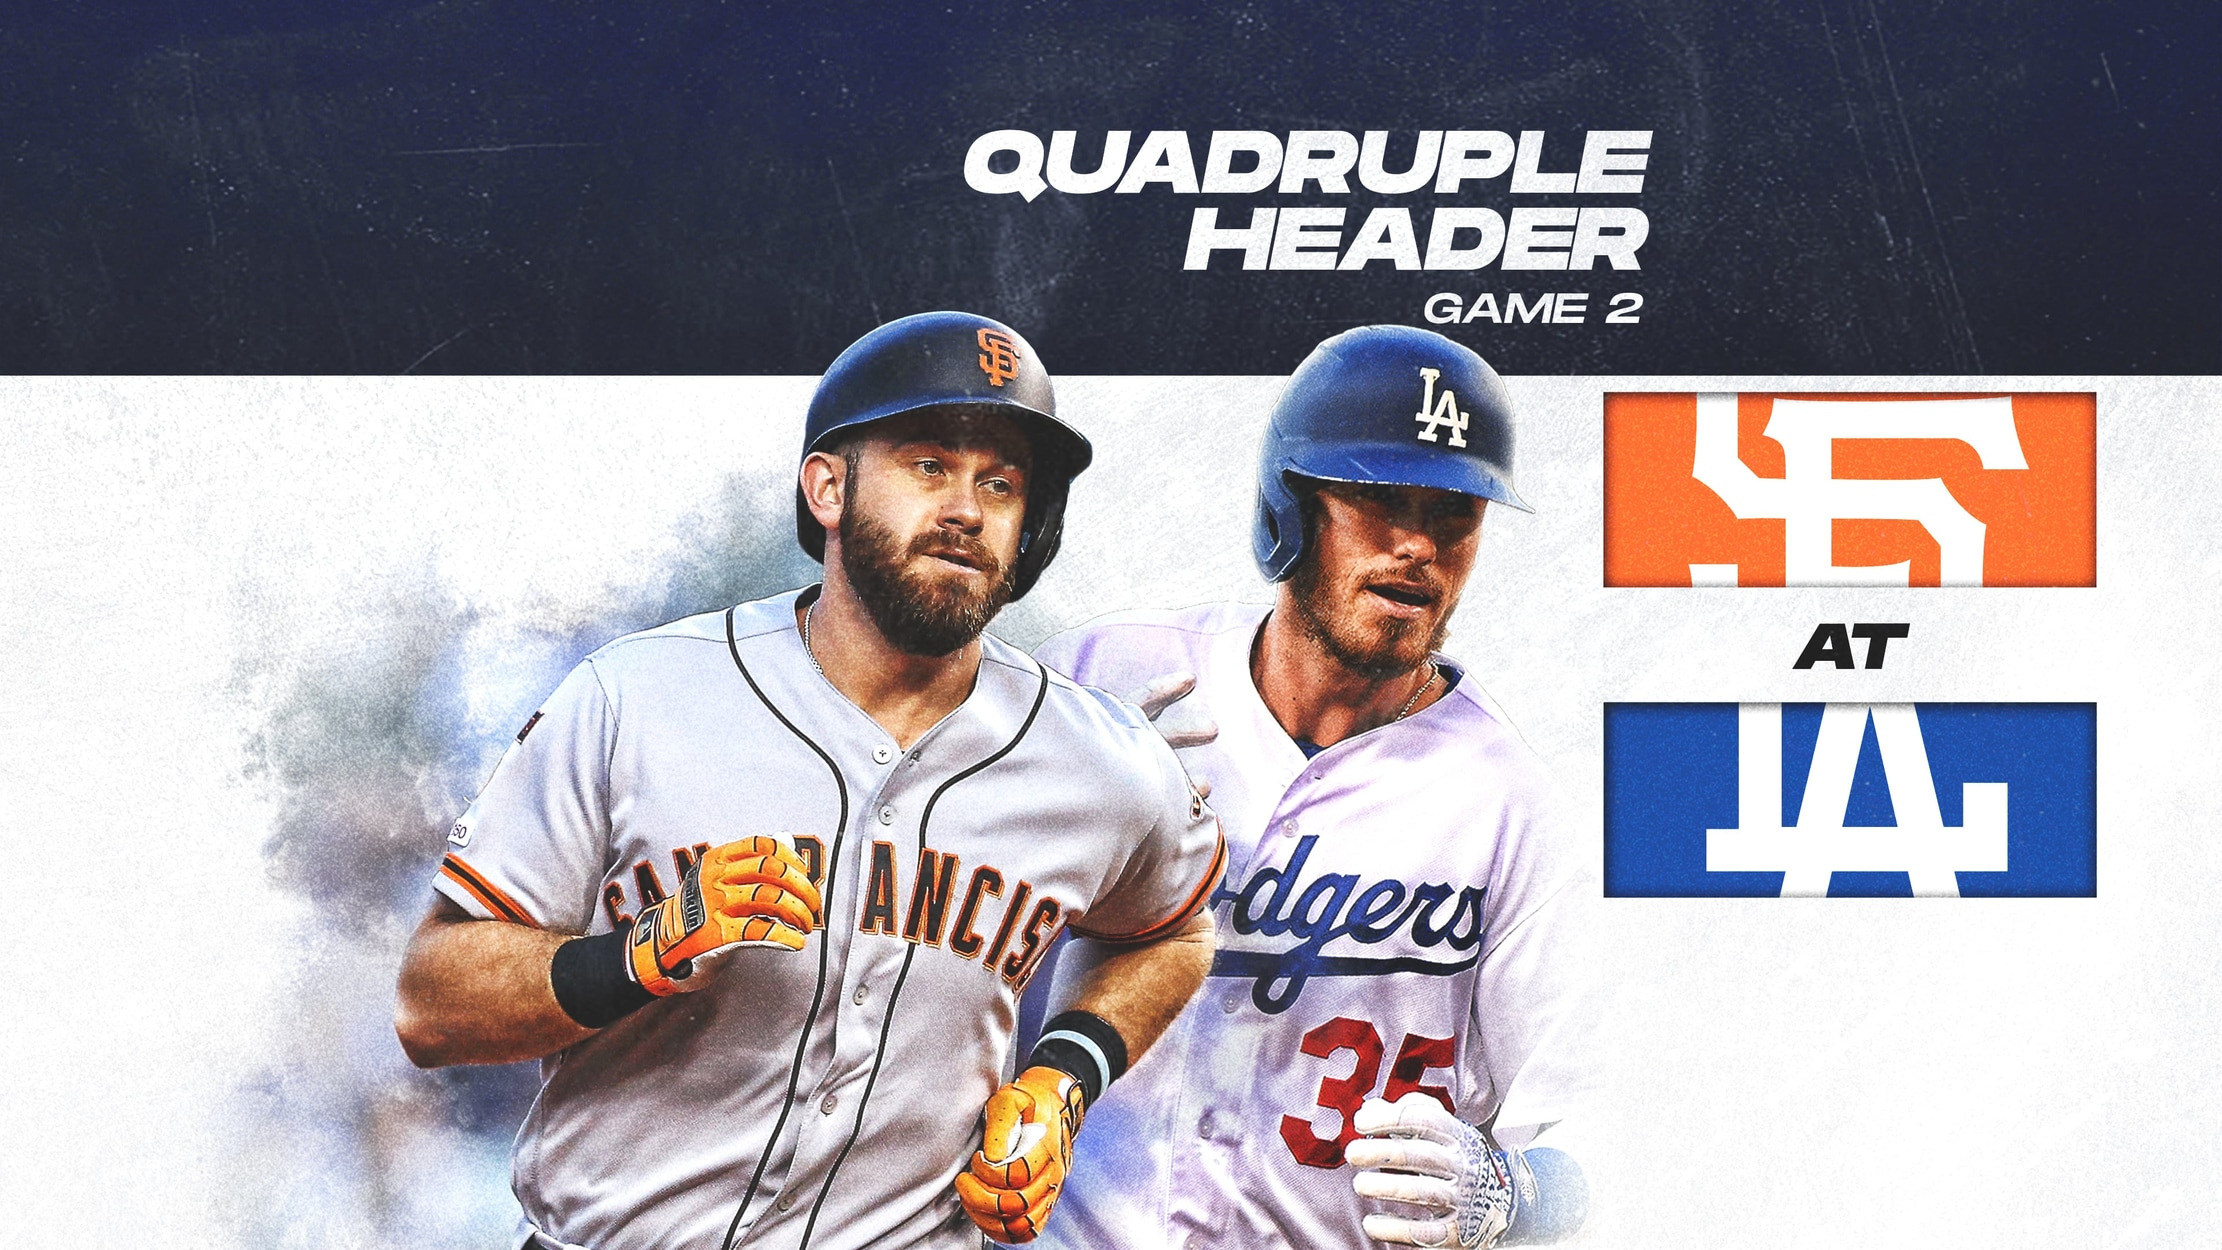 Giants at Dodgers